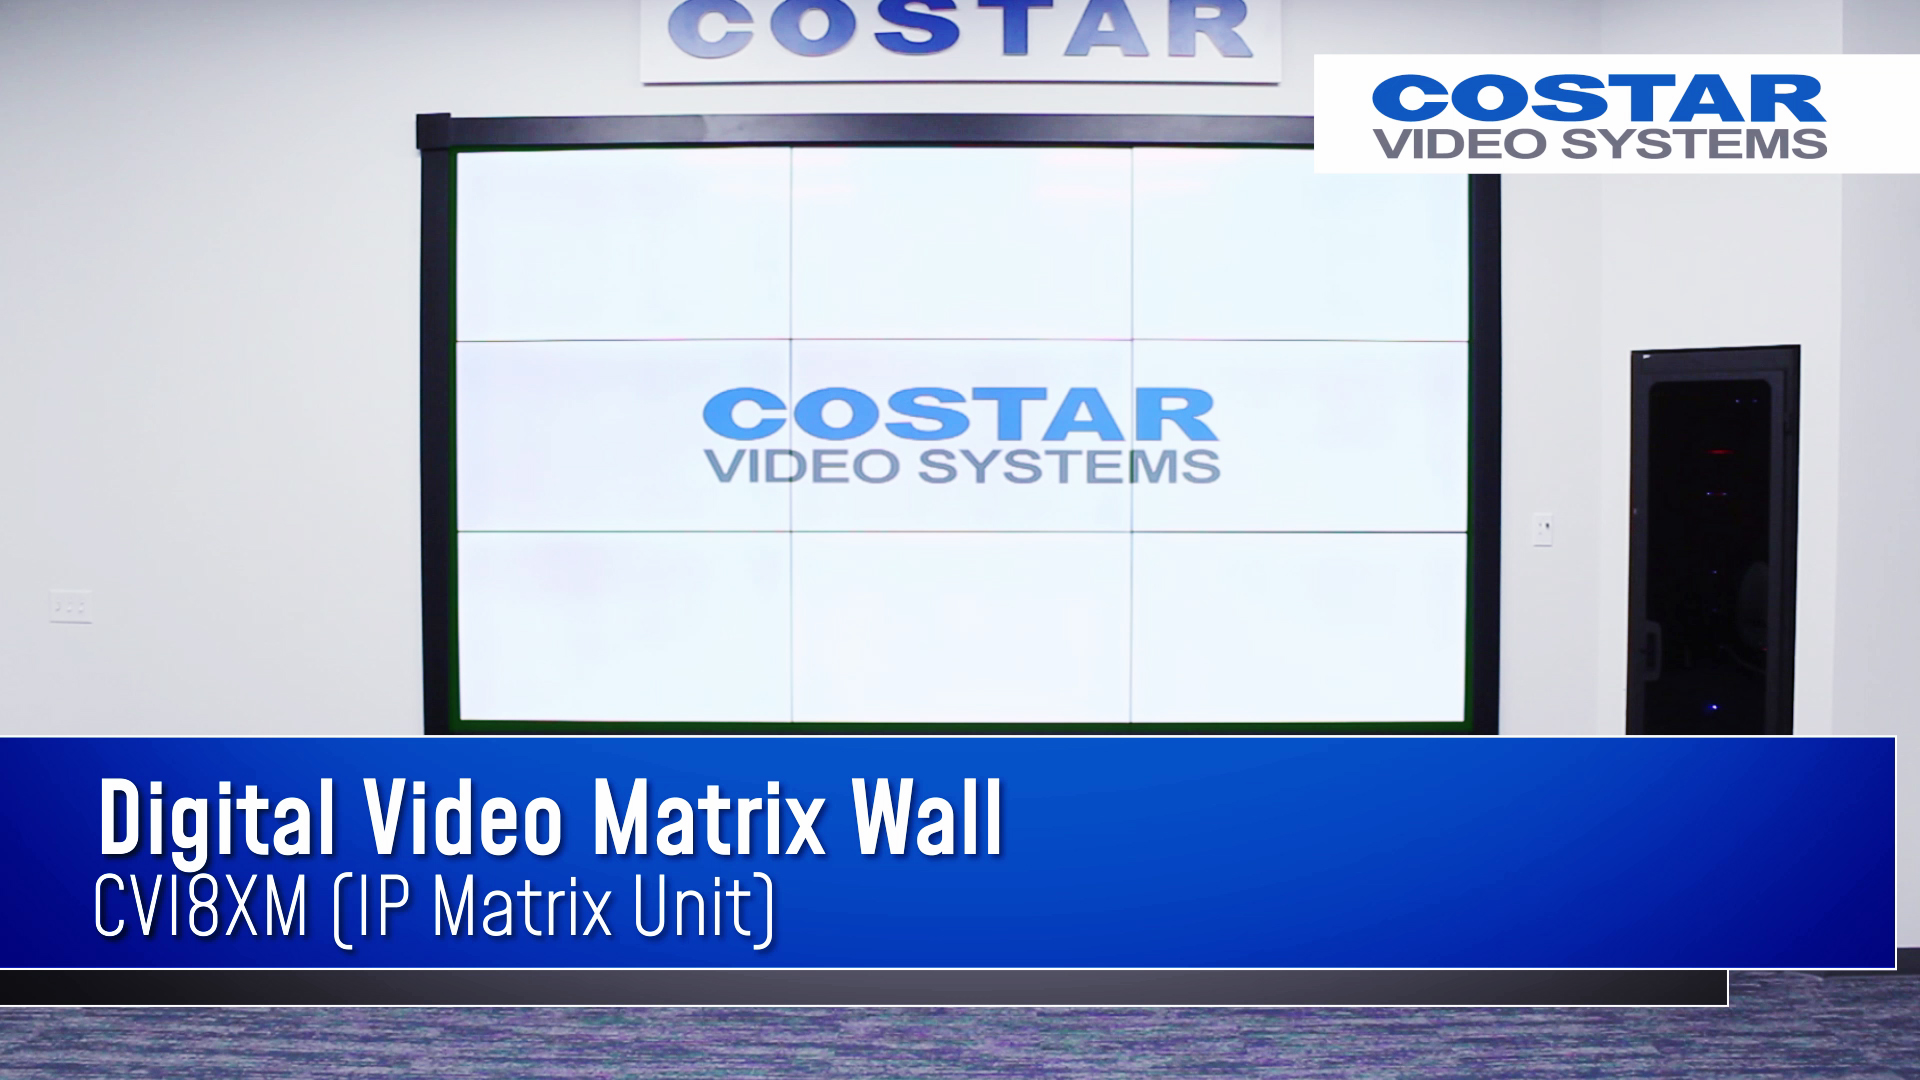 01.30.19 - Digital Video Matrix Wall - CVI8XM